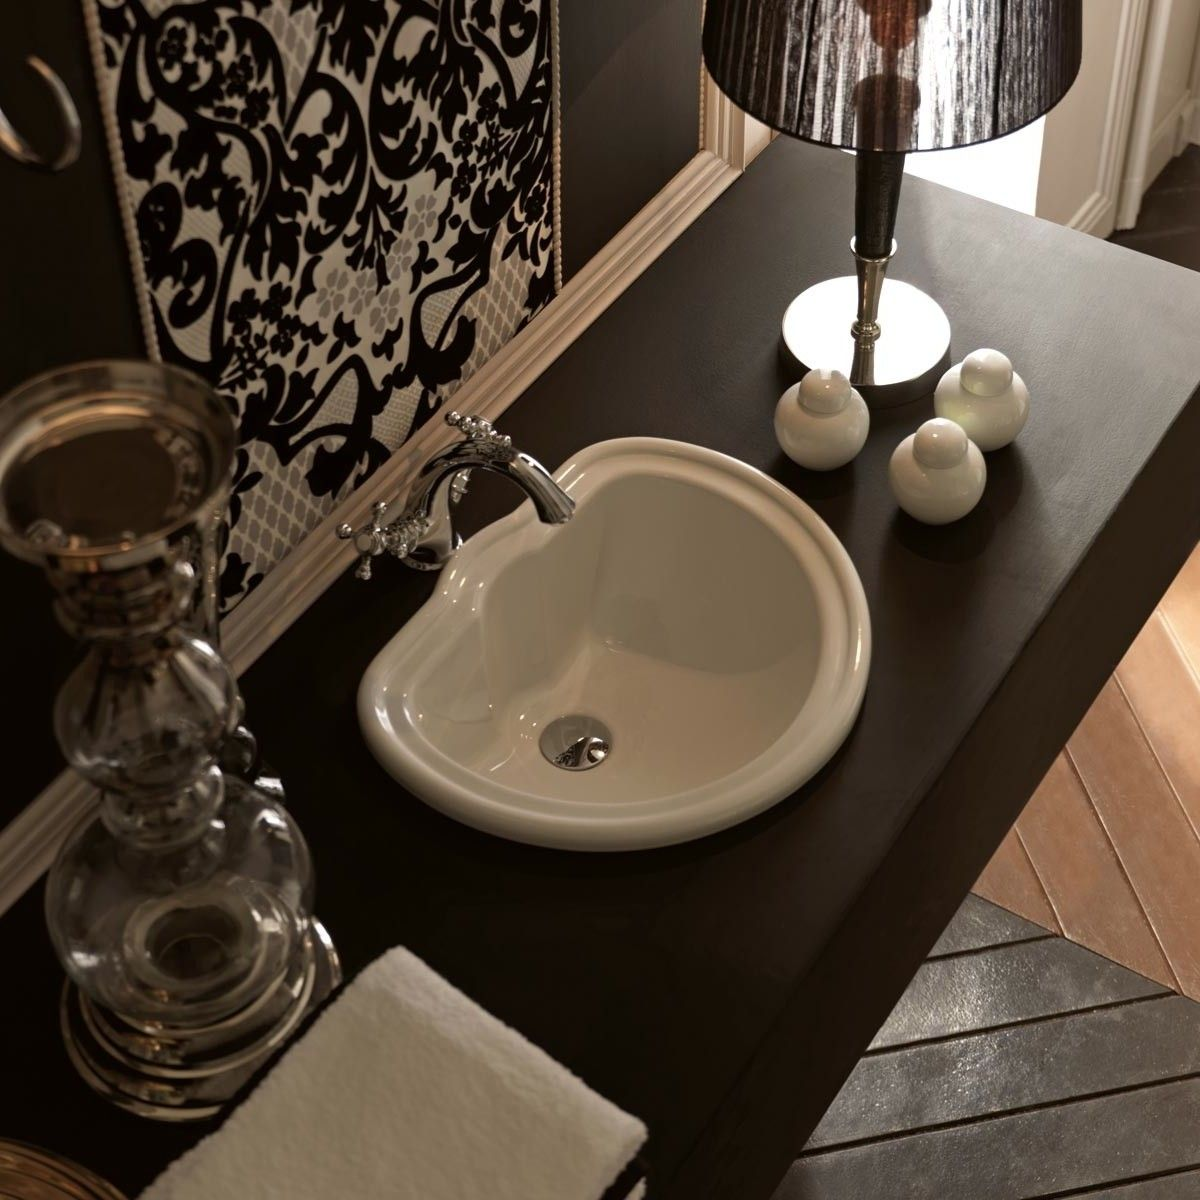 Designer high-end luxury ceramic drop-in bathroom sink.